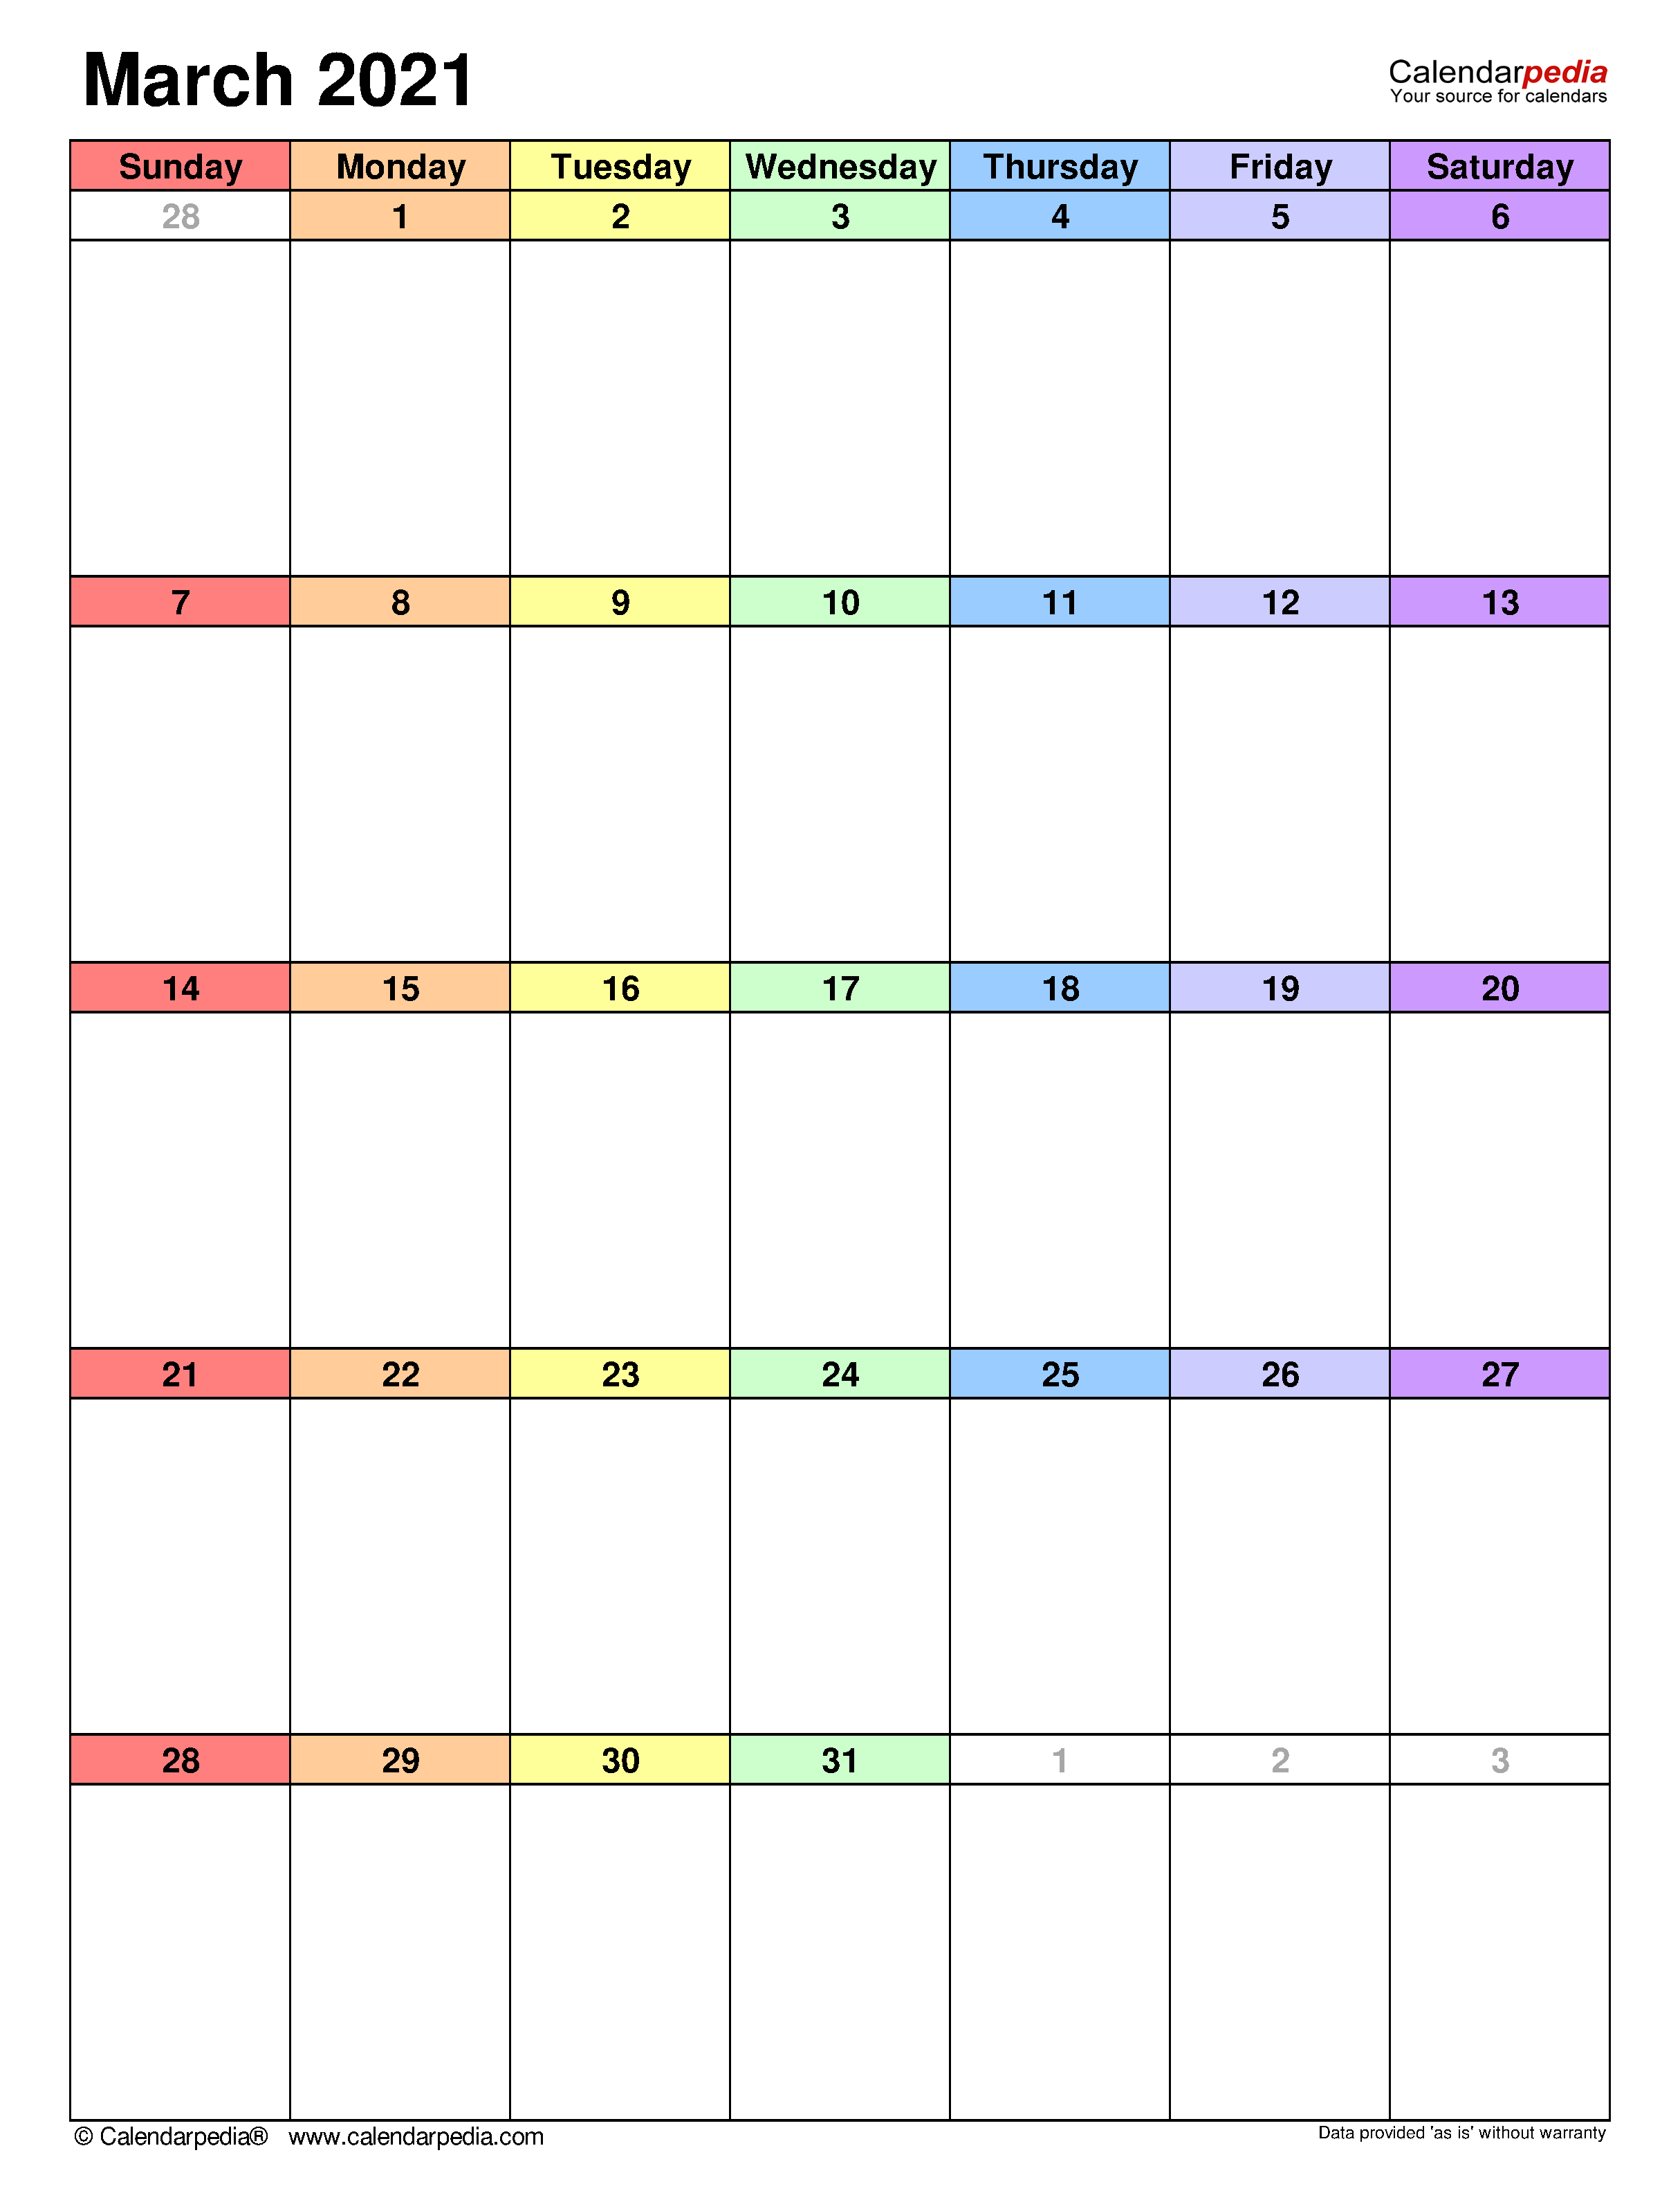 March 2021 Calendar | Templates For Word, Excel And Pdf Throughout March 2021 Calendar Template